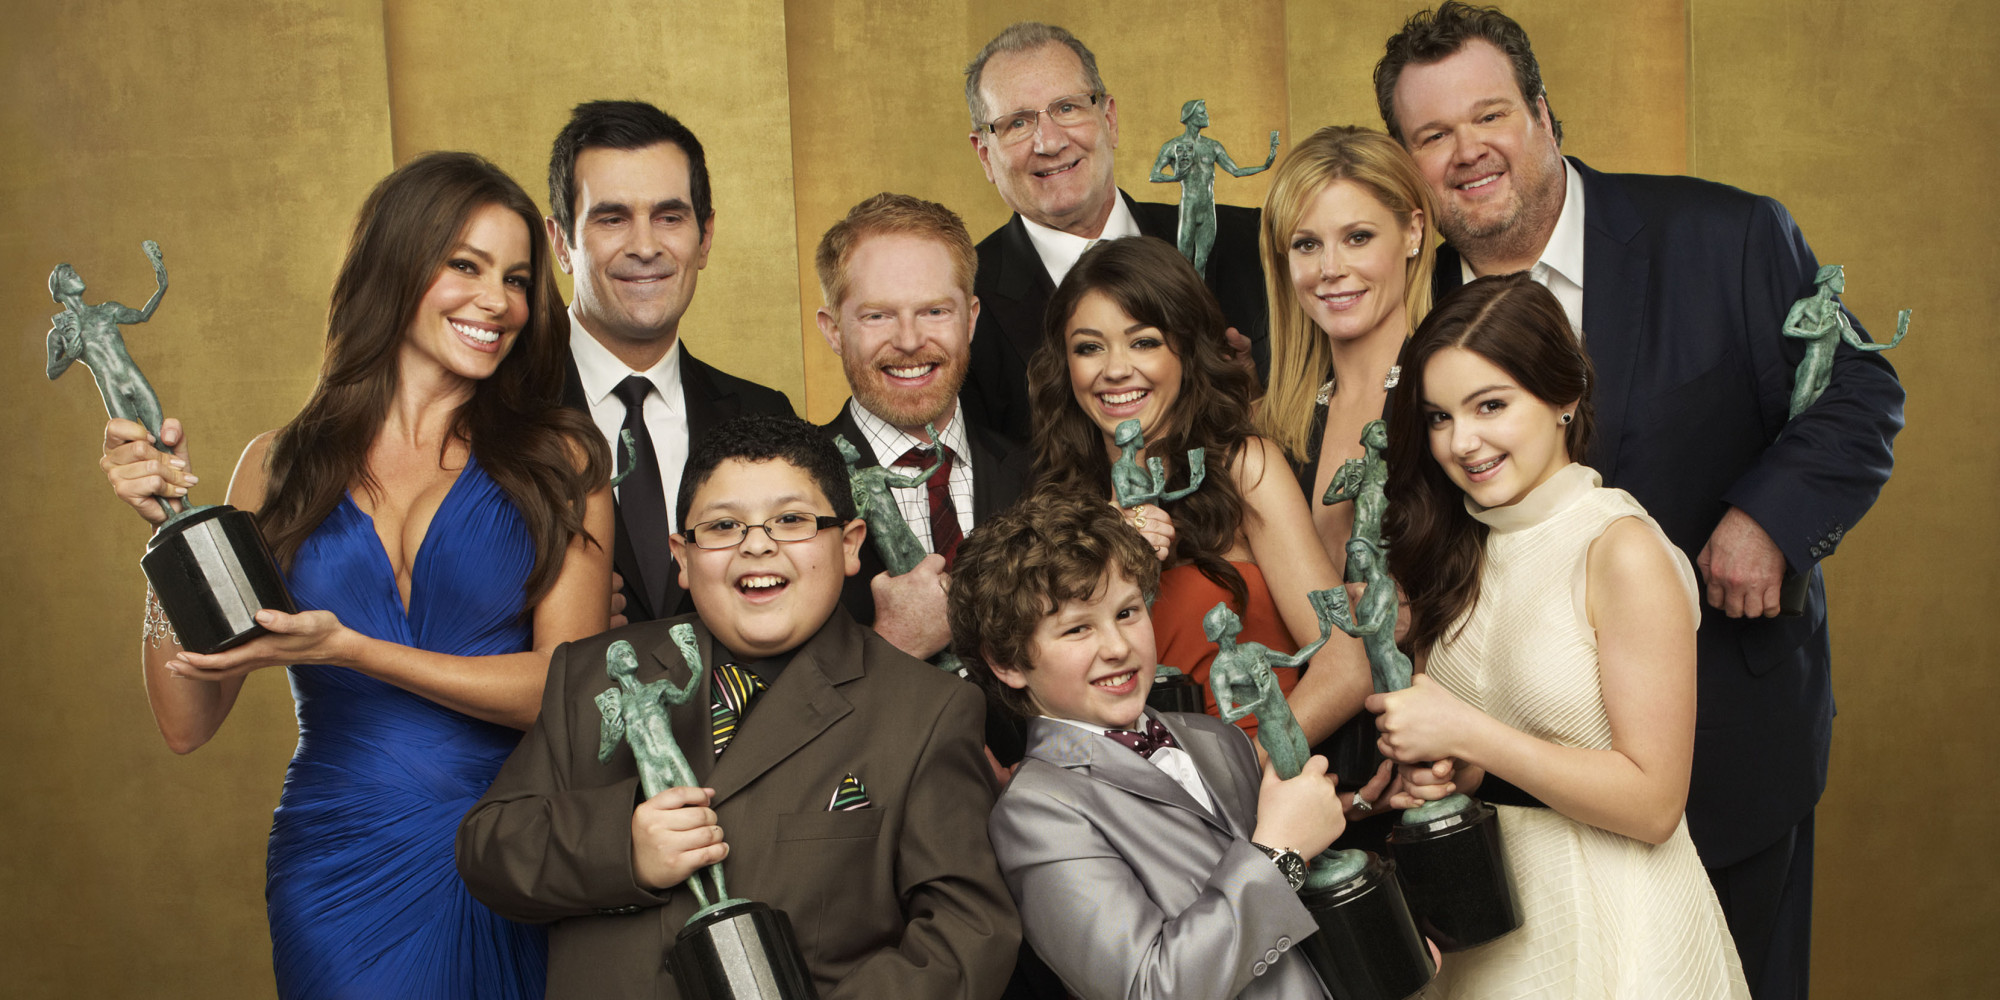 "(EXCLUSIVE, Premium Rates Apply) (Exclusive Coverage)  The cast of ""Modern Family"" pose for a portrait at the TNT/TBS broadcast of the 17th Annual Screen Actors Guild Awards held at The Shrine Auditorium  on January 30, 2011 in Los Angeles, California. 20823_002_254_R.jpg *** Local Caption ***"